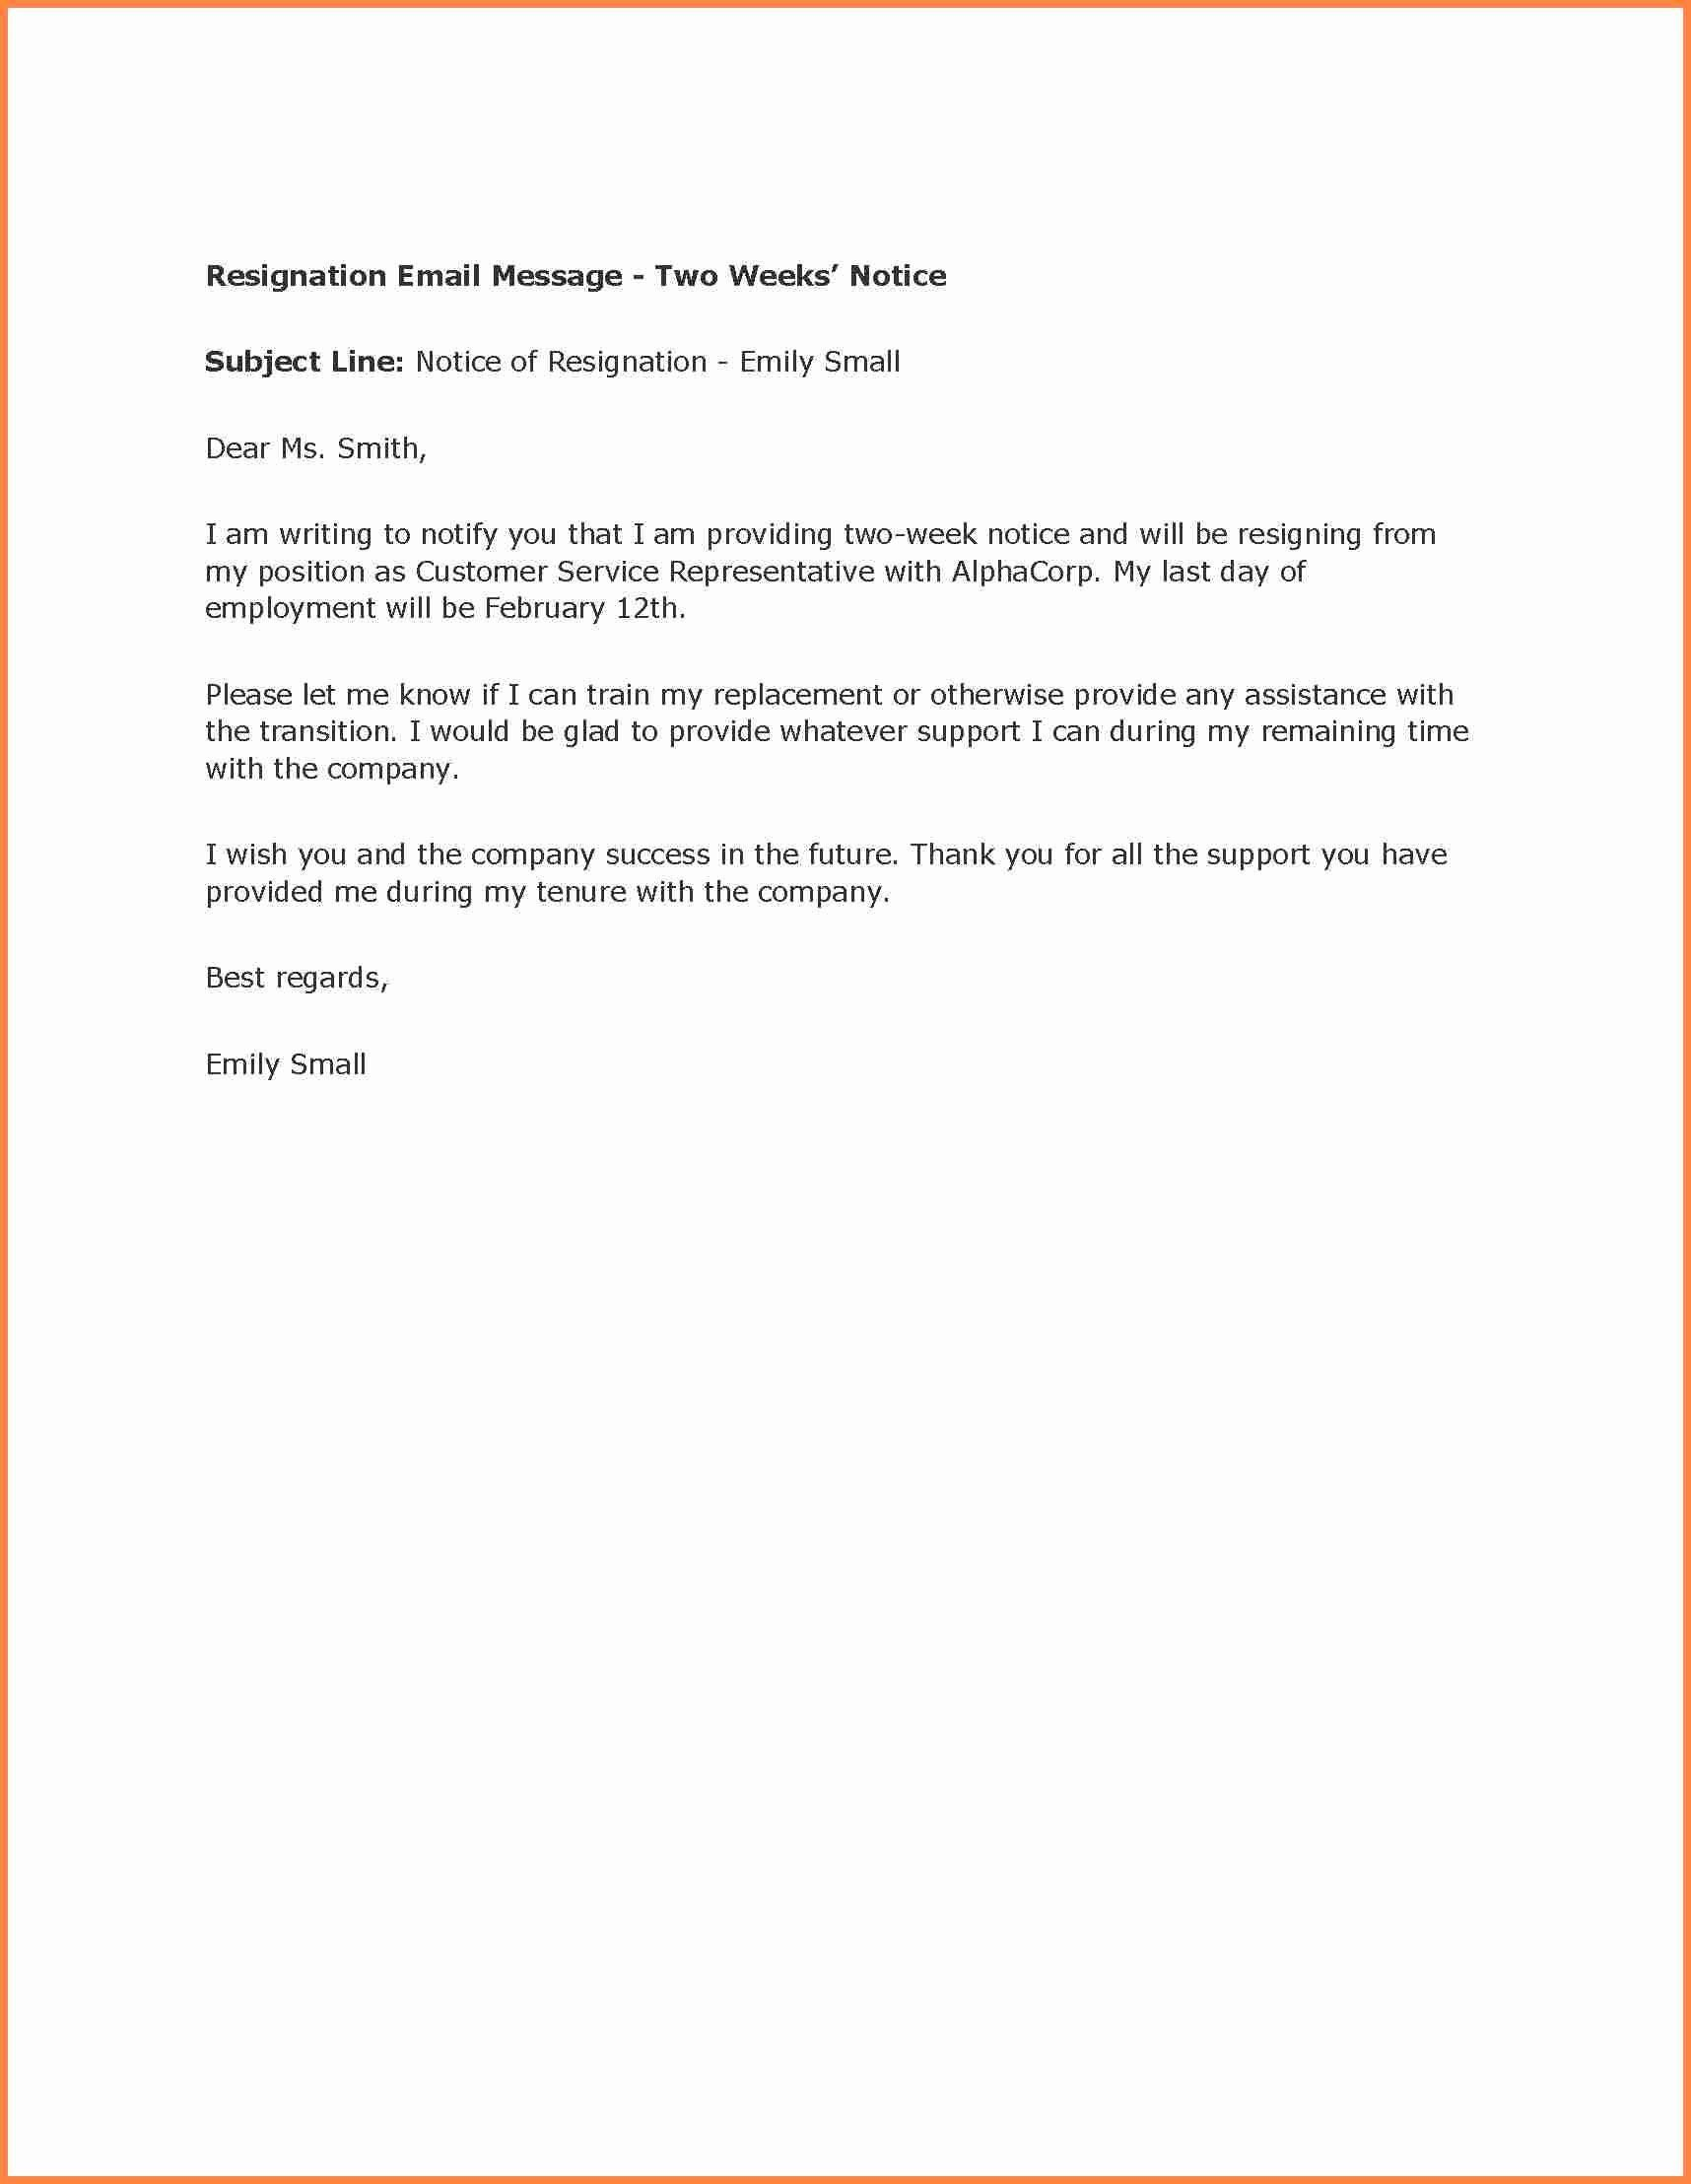 two week resignation letter awesome 3 simple cv with little experience sample email for job application resume fresher linkedin summary examples entry level